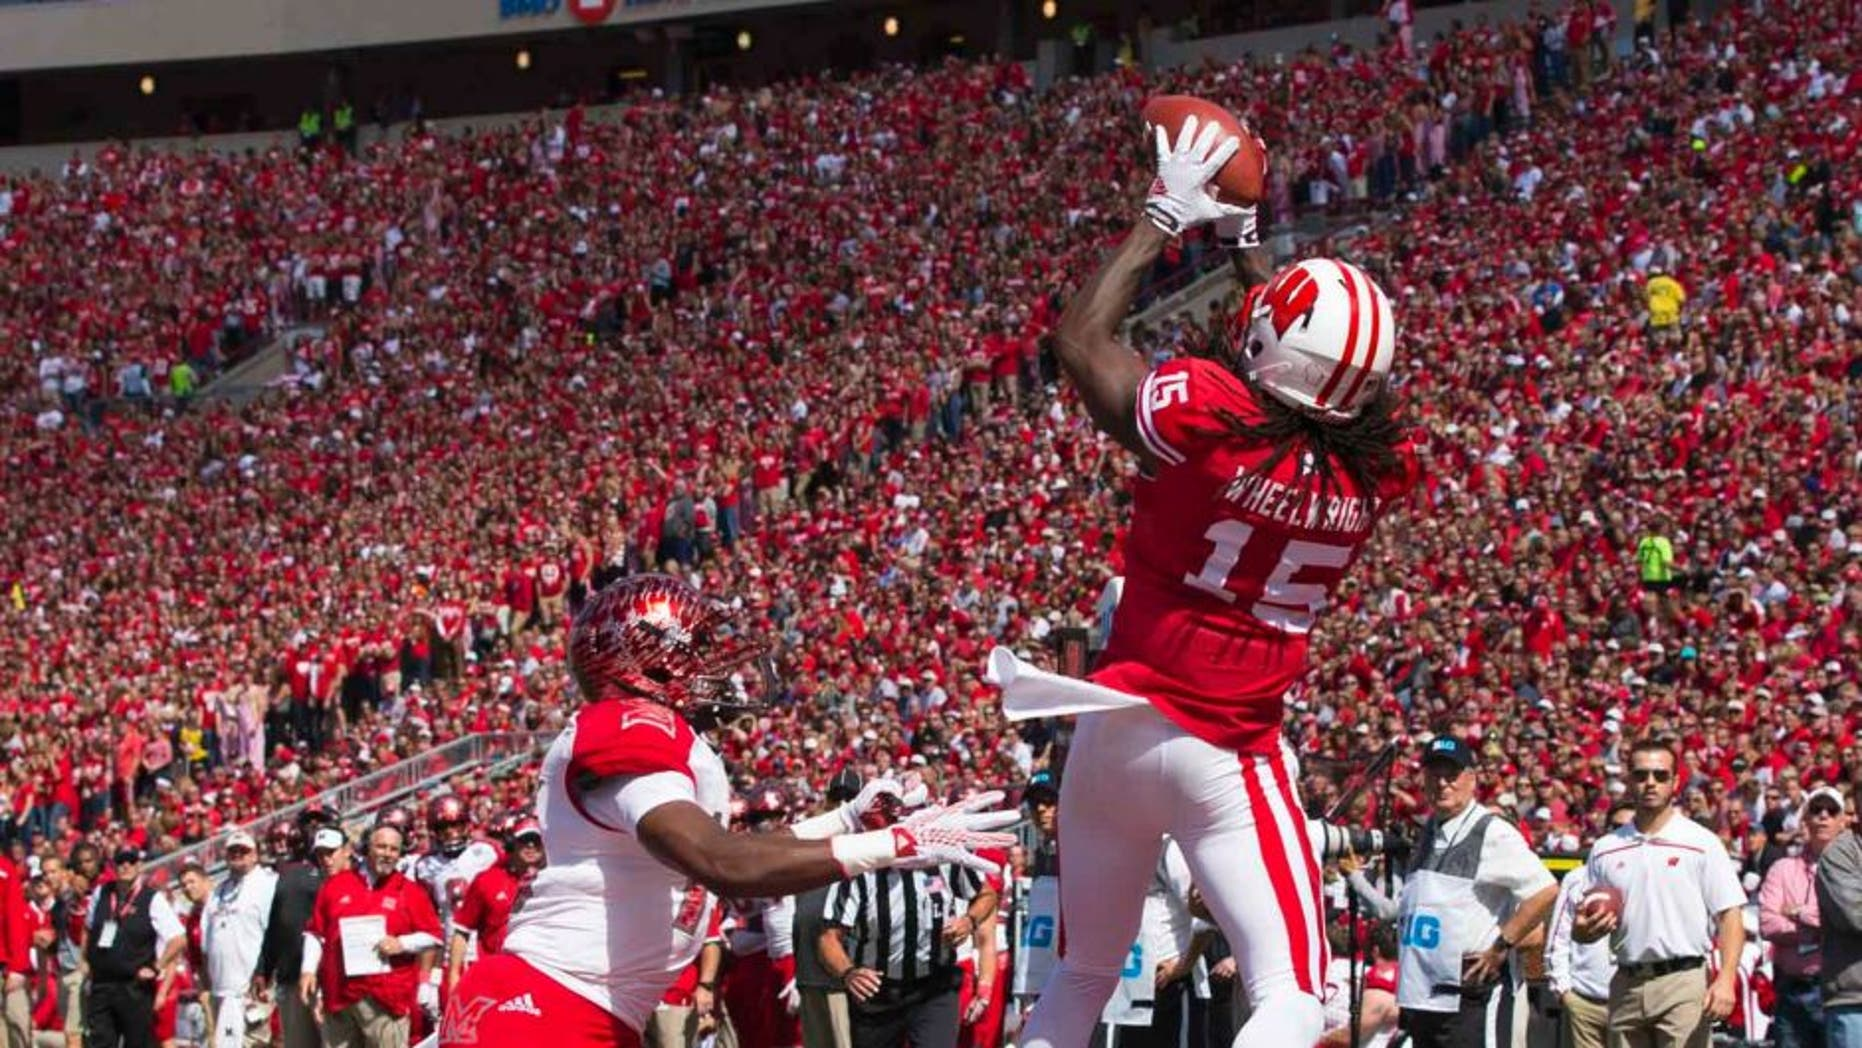 Wisconsin Badgers wide receiver Robert Wheelwright catches a touchdown pass during the second quarter against the Miami (Ohio) RedHawks at Camp Randall Stadium in Madison, Wis., on Saturday, Sept. 12, 2015.